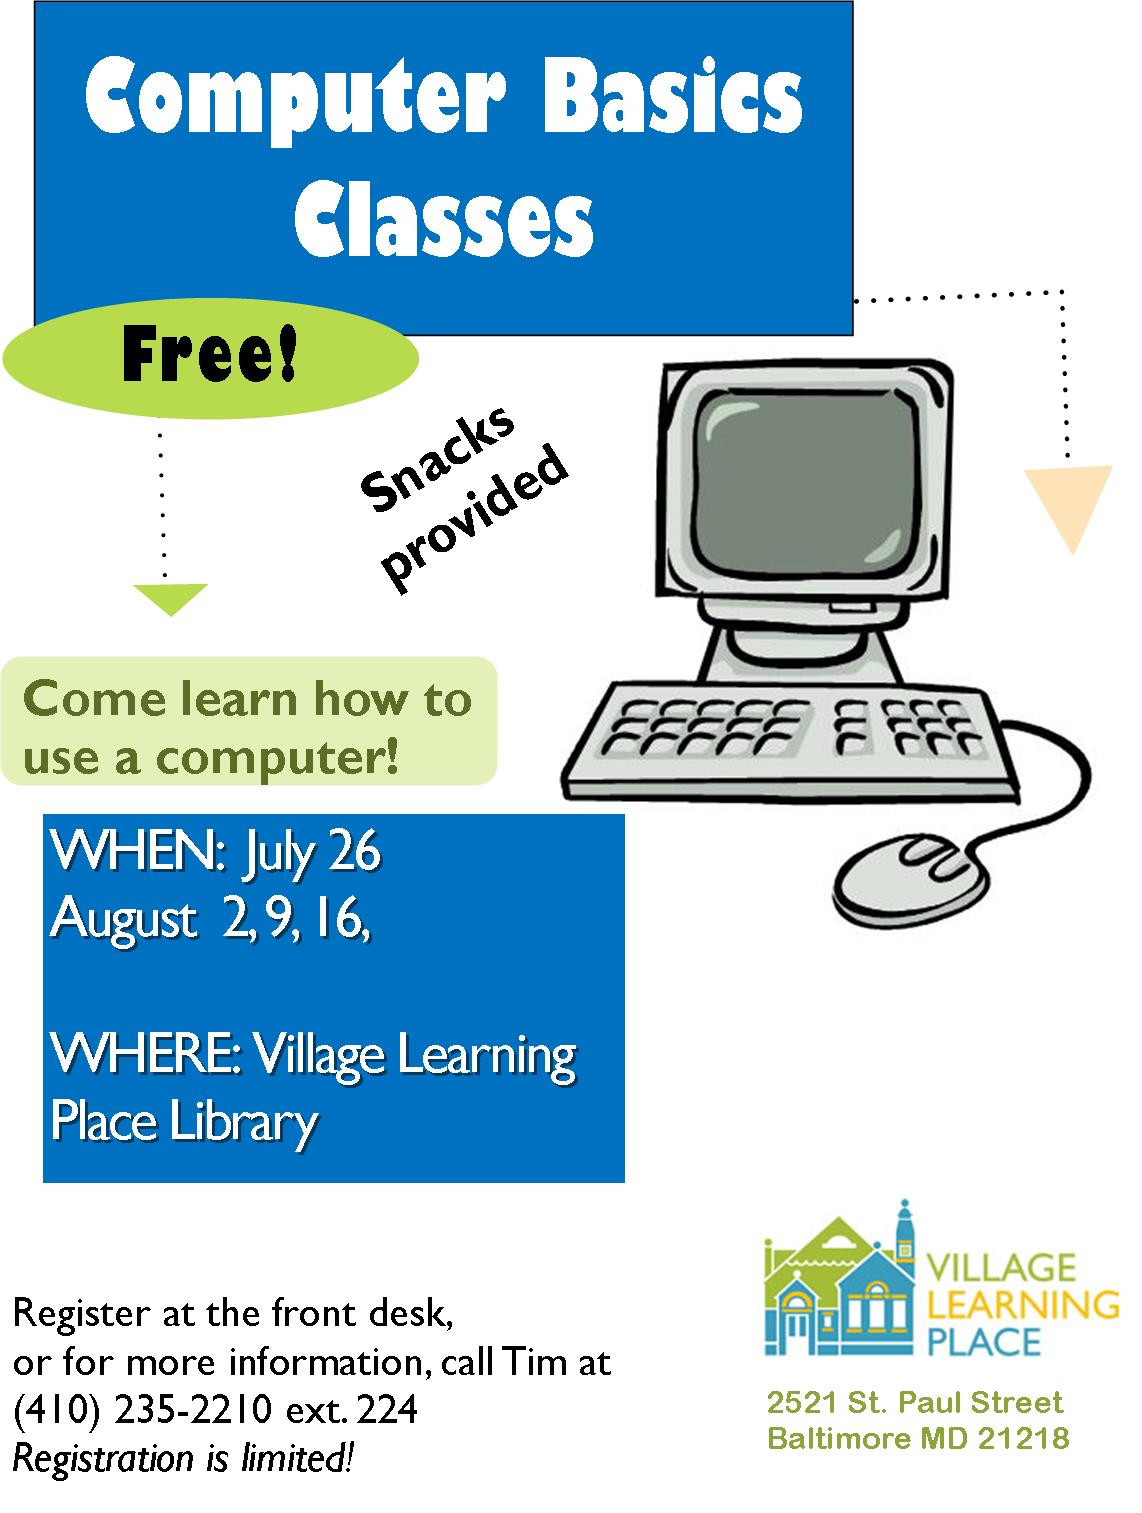 Computer Basics Classes Village Learning Place